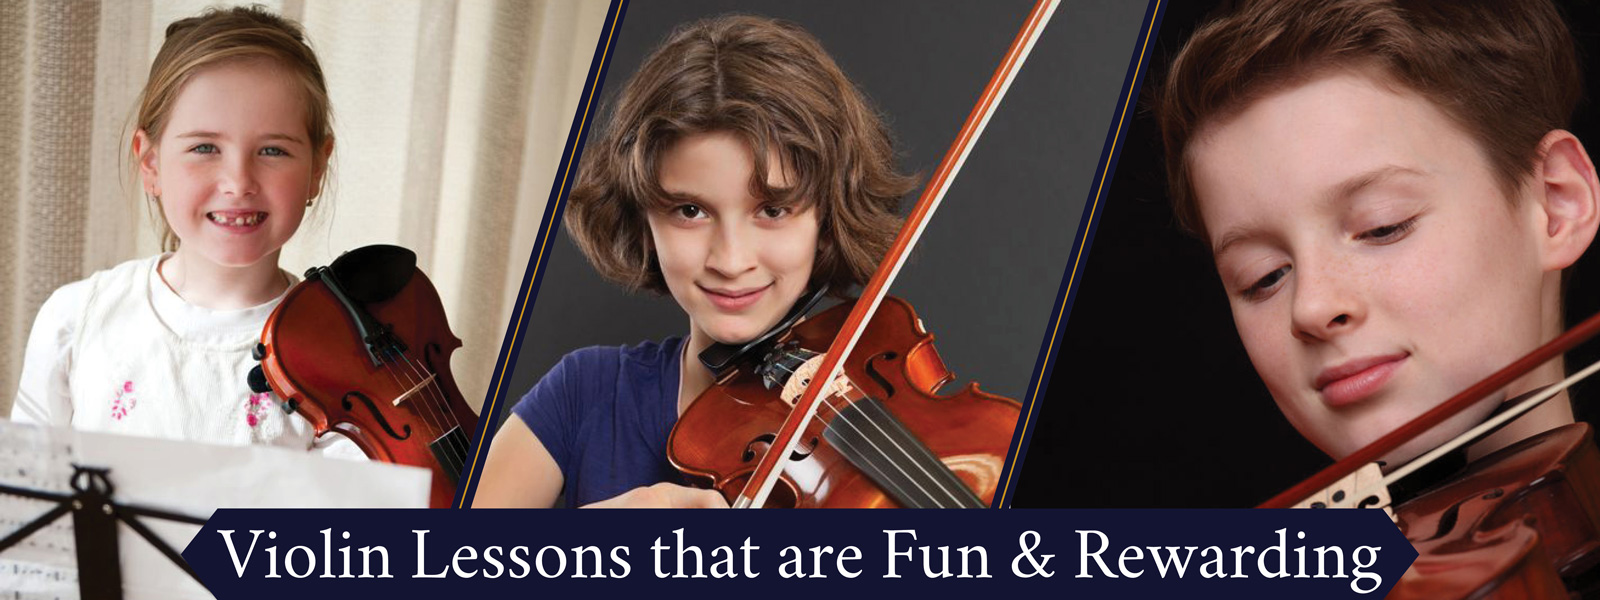 Spokane Violin Lessons